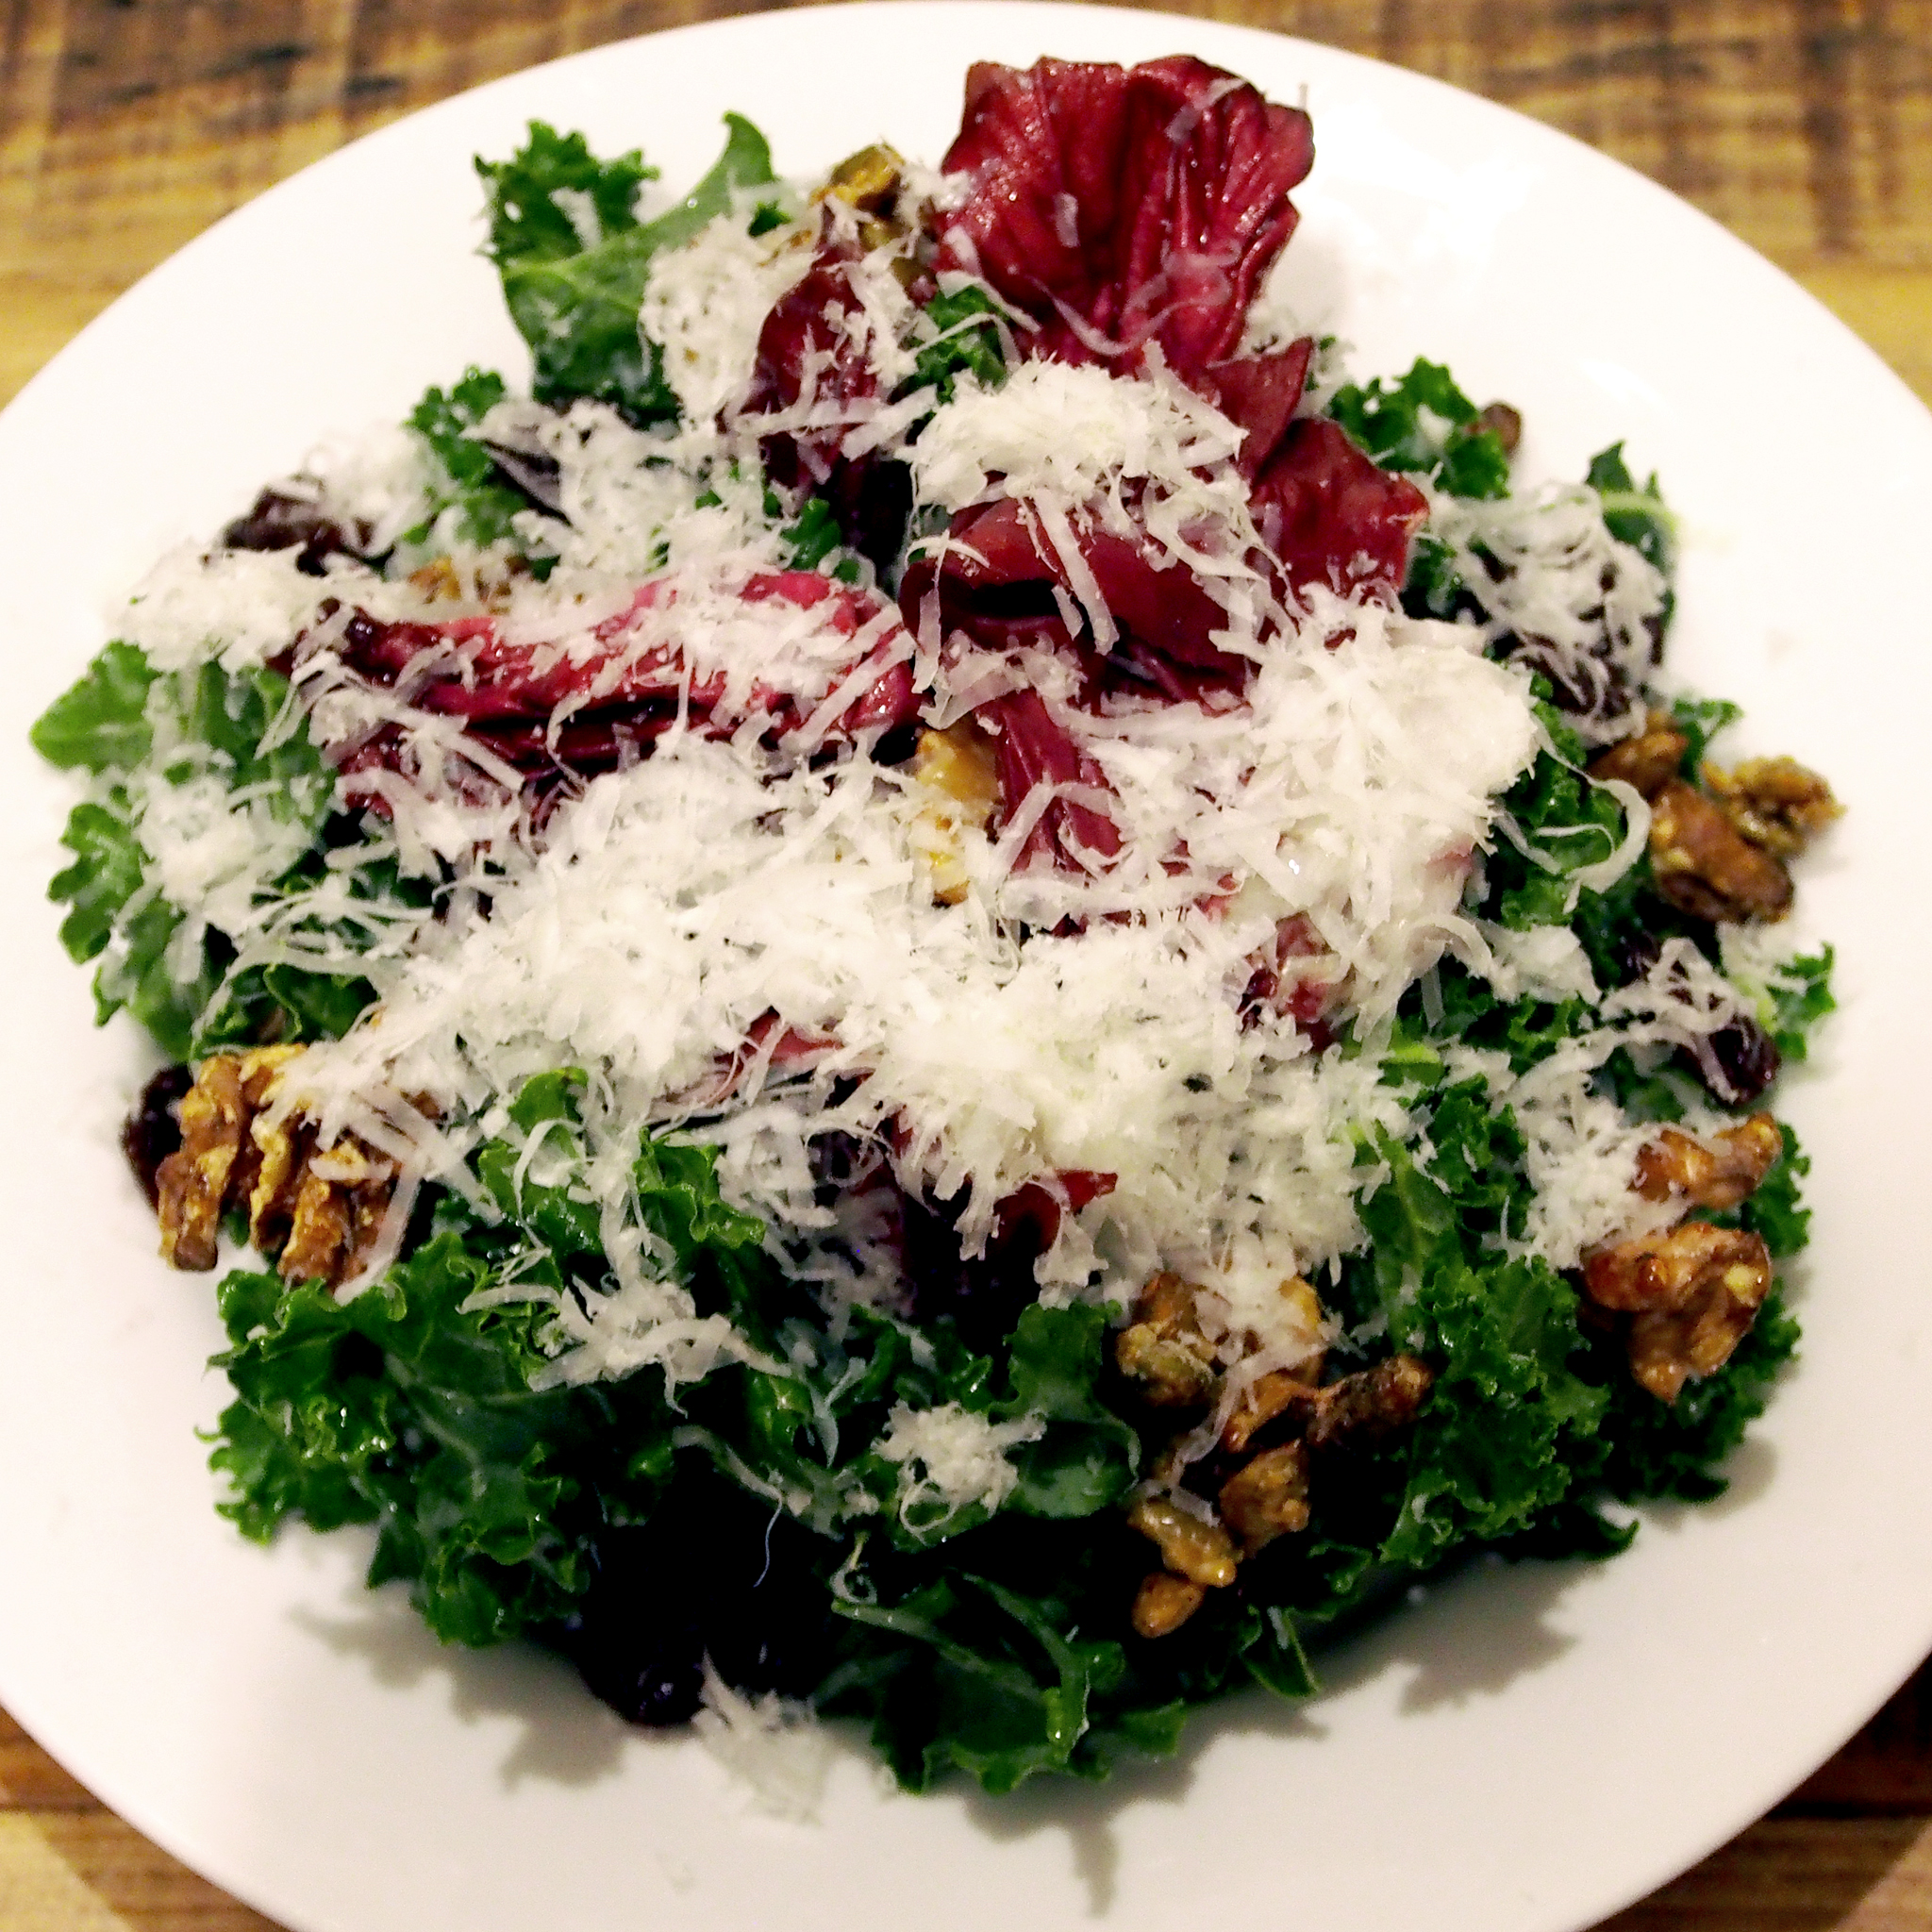 Cherry, kale & walnut salad with radicchio, Pecorino cheese and pumpkin seeds. Yum!